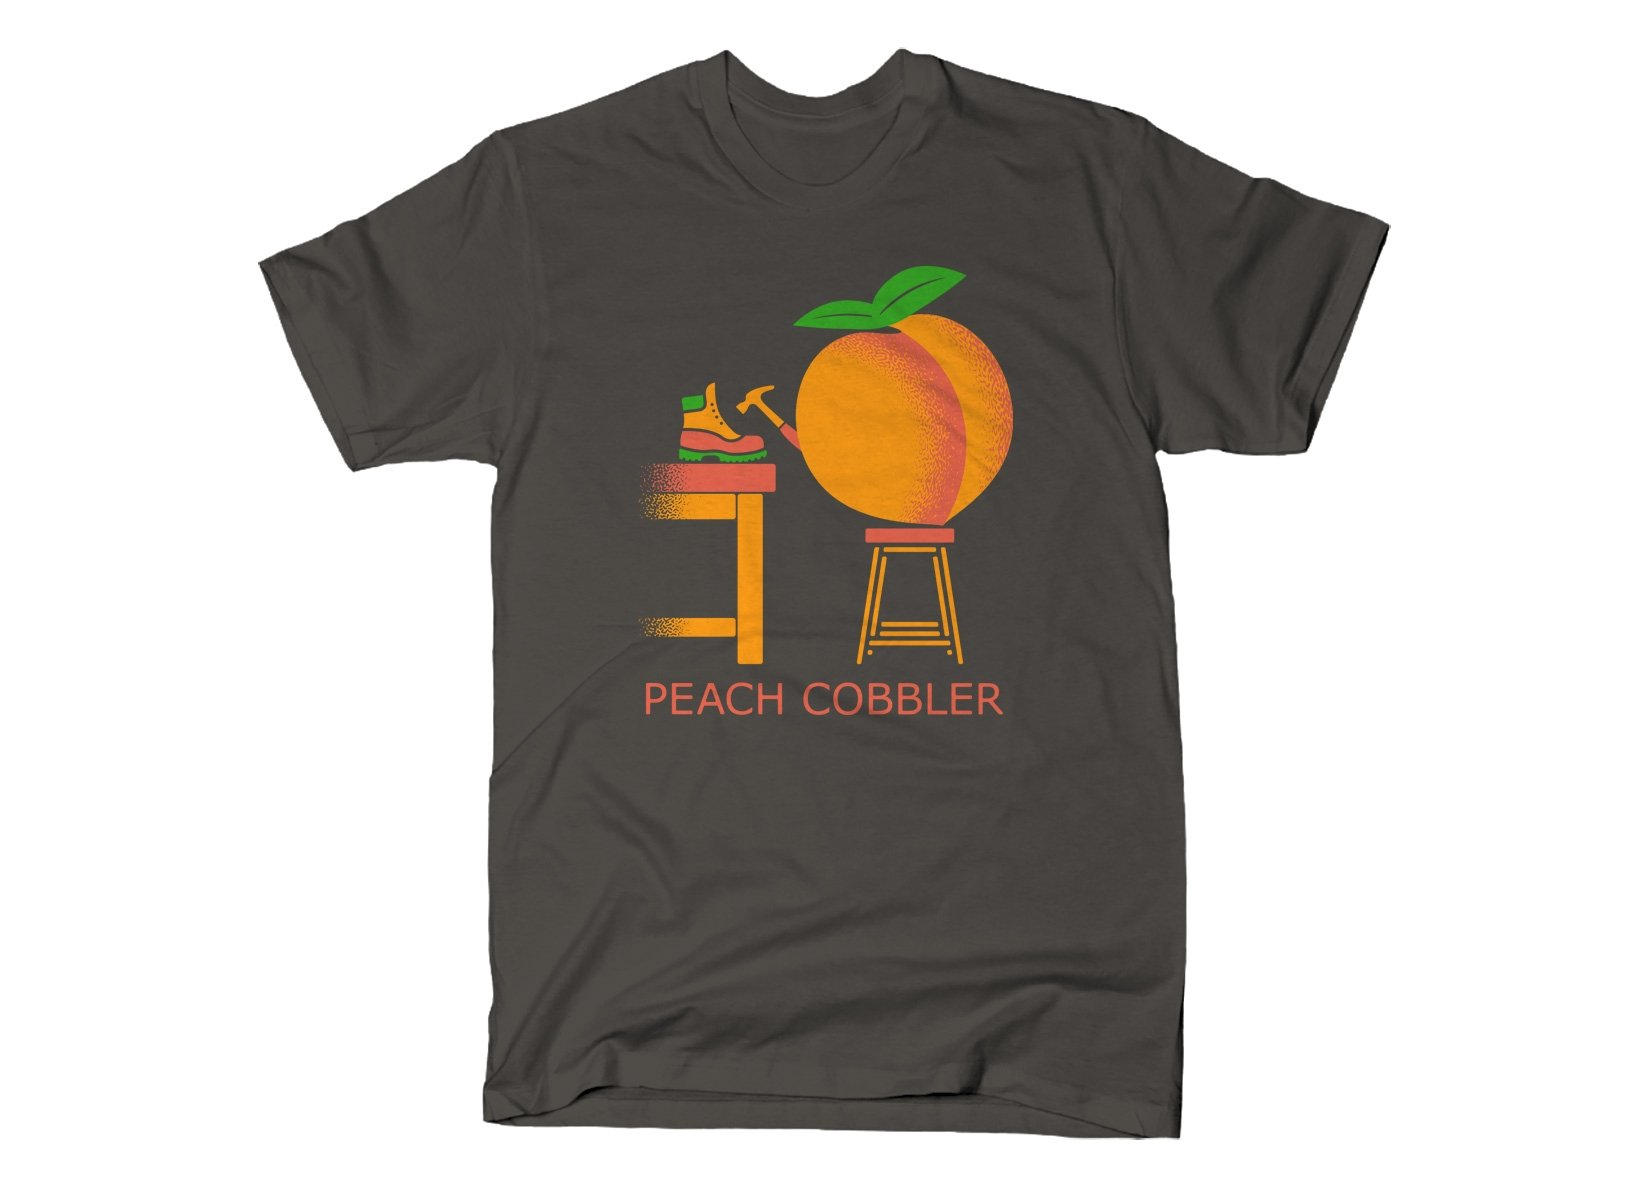 Peach Cobbler on Mens T-Shirt